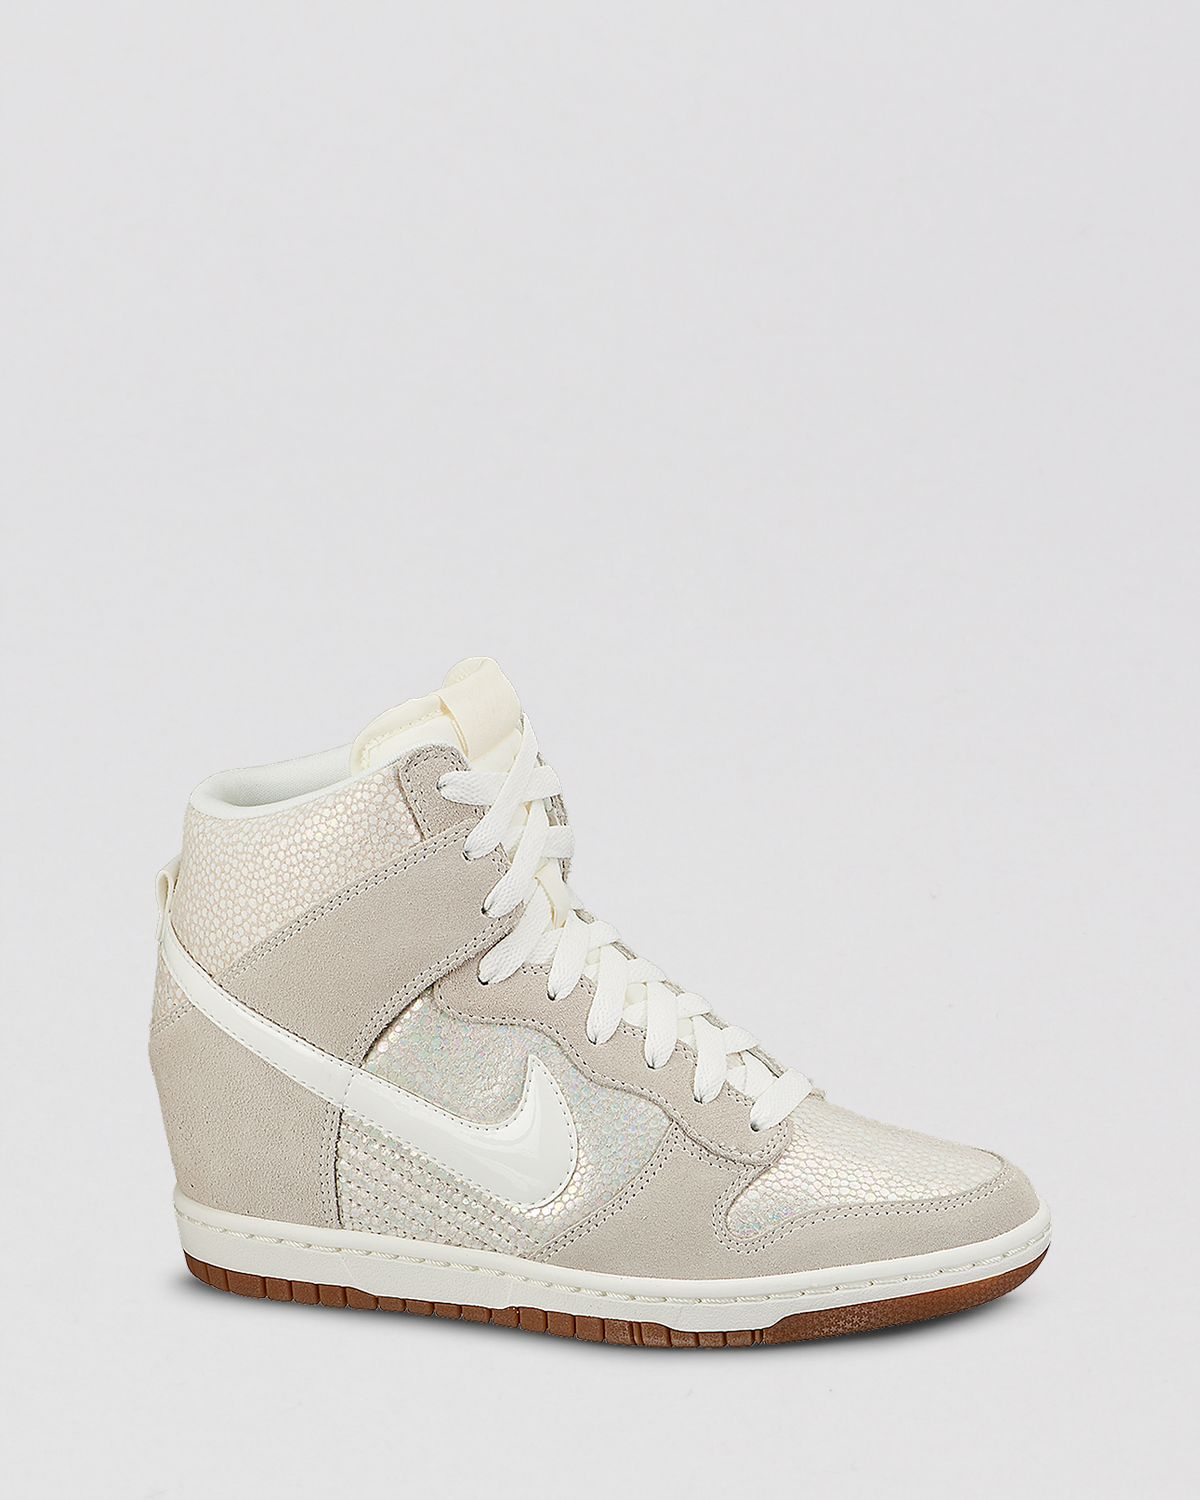 Lyst - Nike Lace Up High Top Wedge Sneakers - Womens Dunk -6381